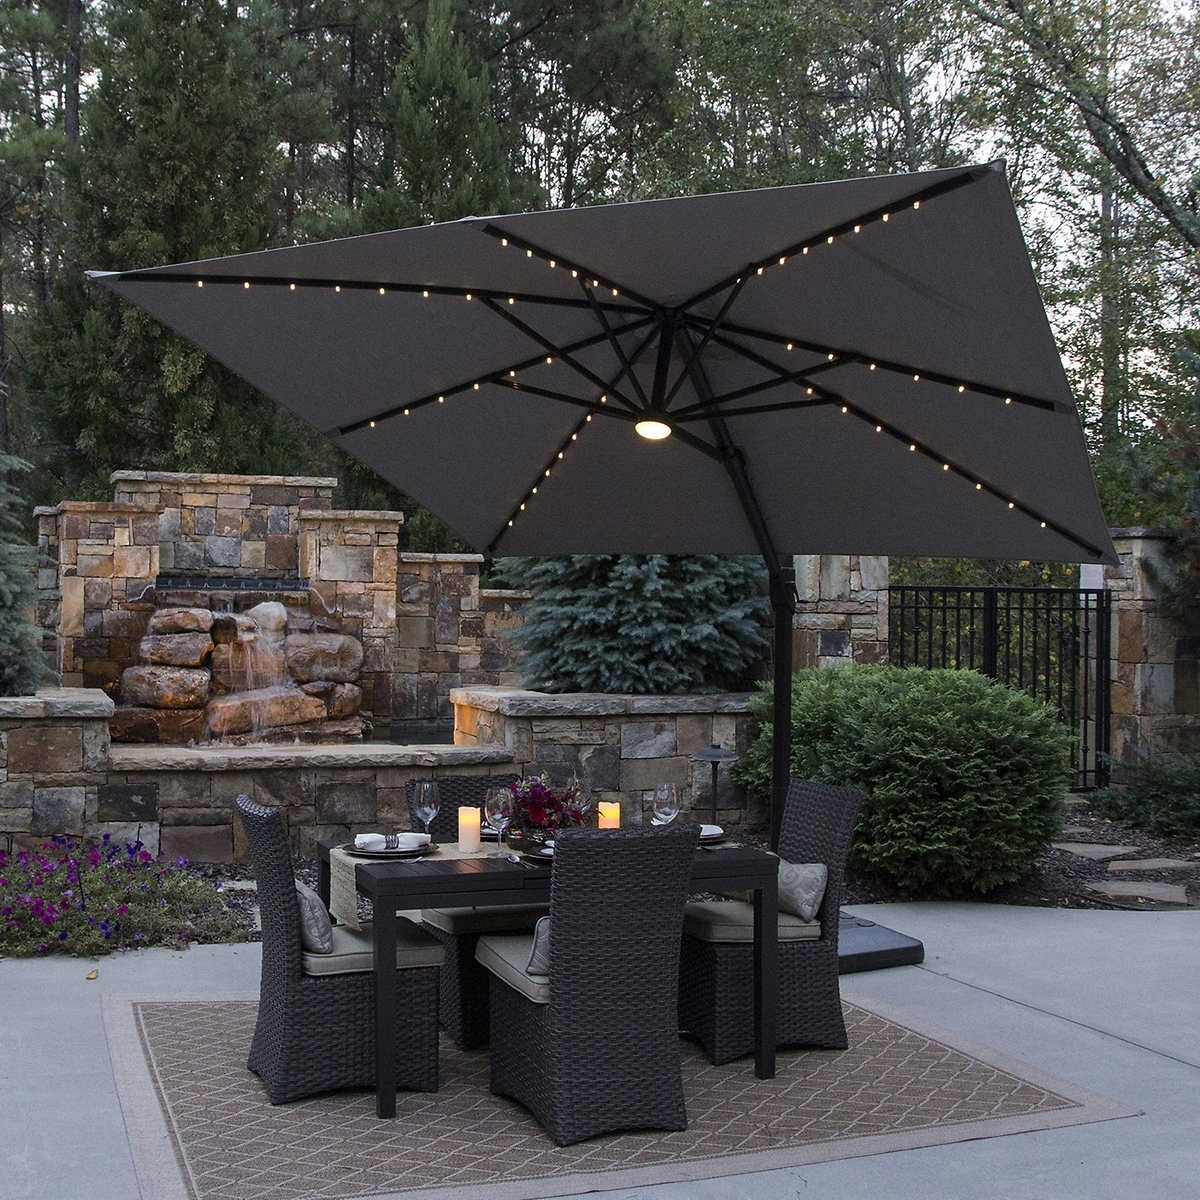 Best And Newest Patio Umbrellas From Costco With Costco Outdoor Patio Umbrellas Fresh Umbrella Concept Modern And (View 4 of 20)